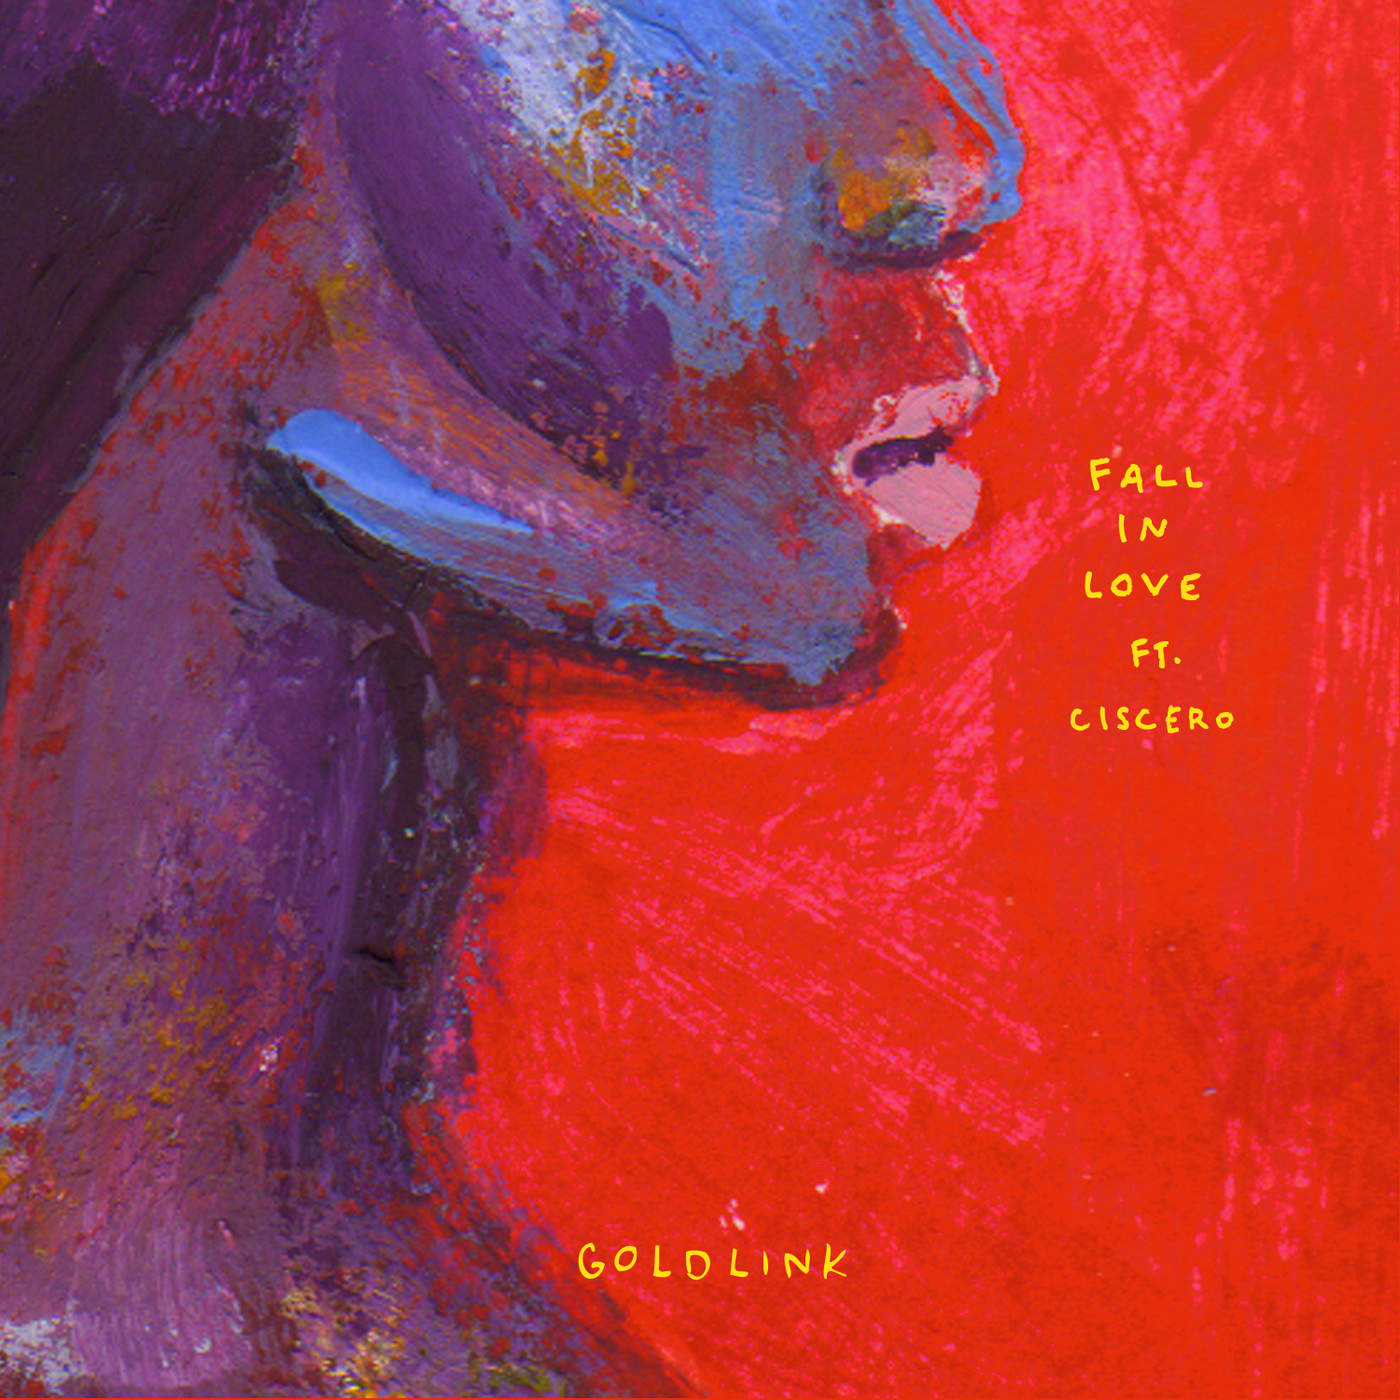 GoldLink - Fall in Love (feat. Ciscero) - Single Cover